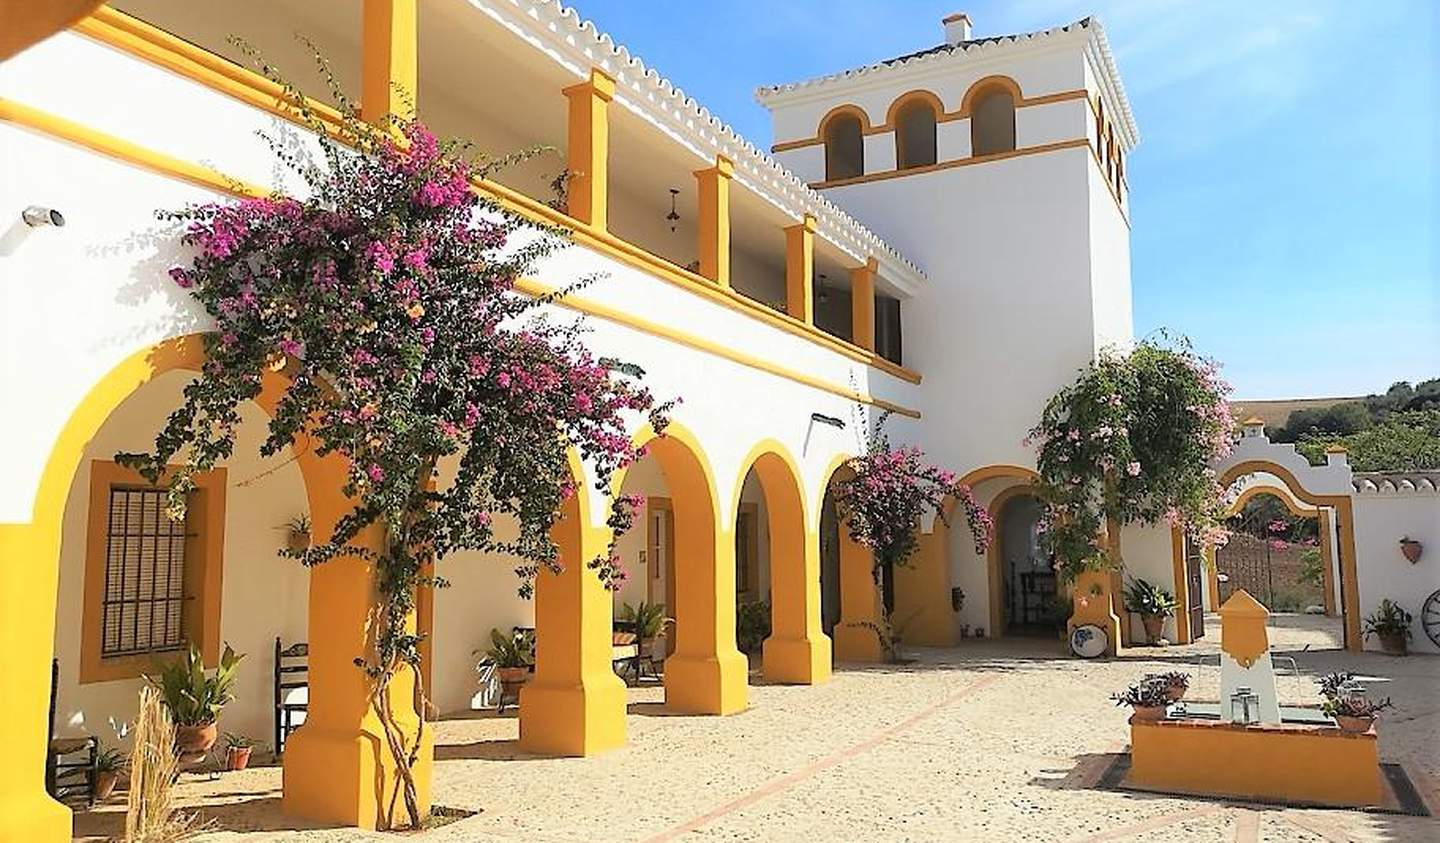 Hotel with garden and reception room Spain